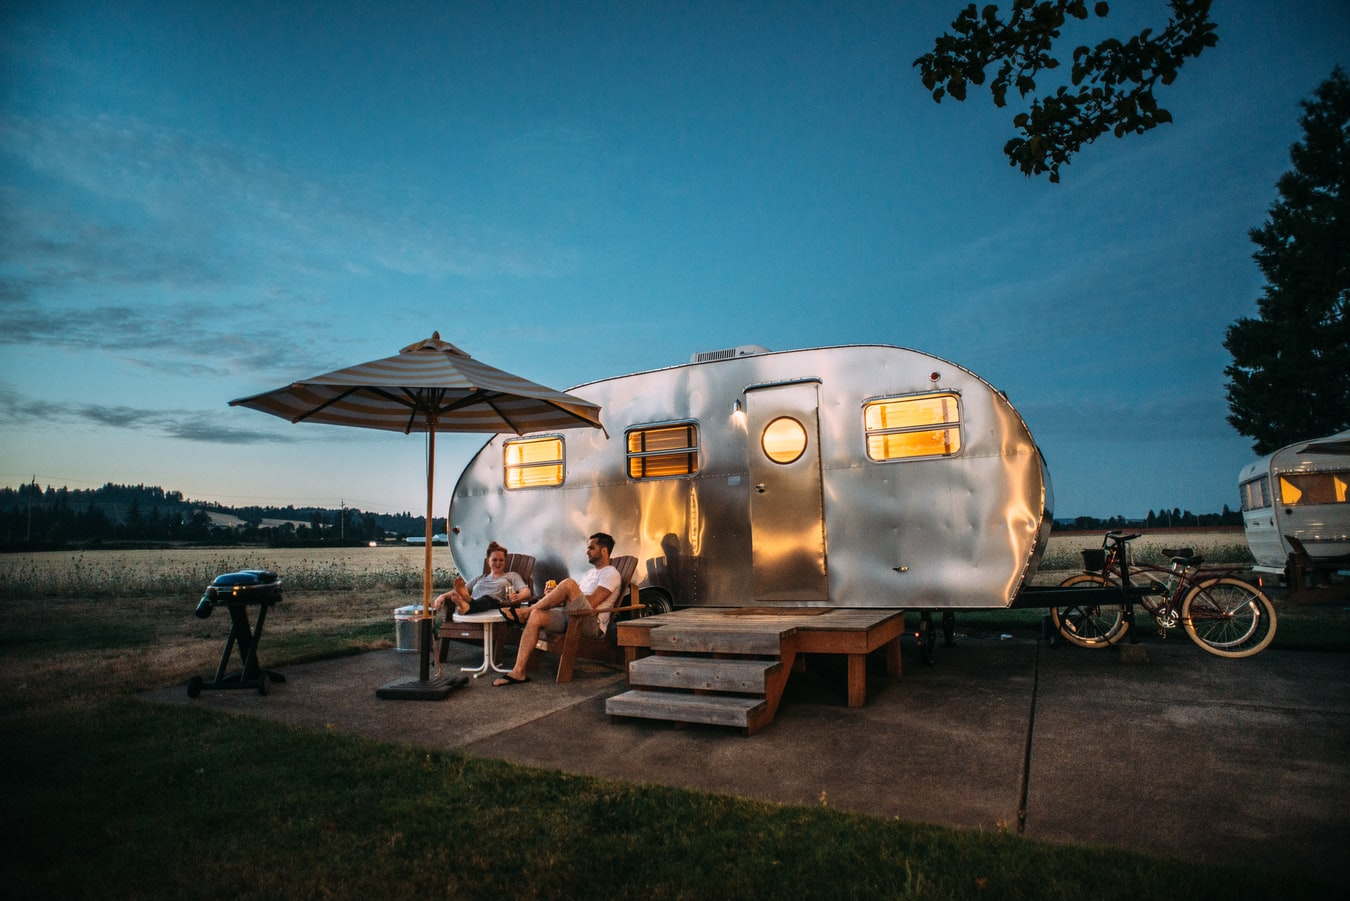 IS IT SAFE TO CROSS THE COUNTRY IN AN RV?